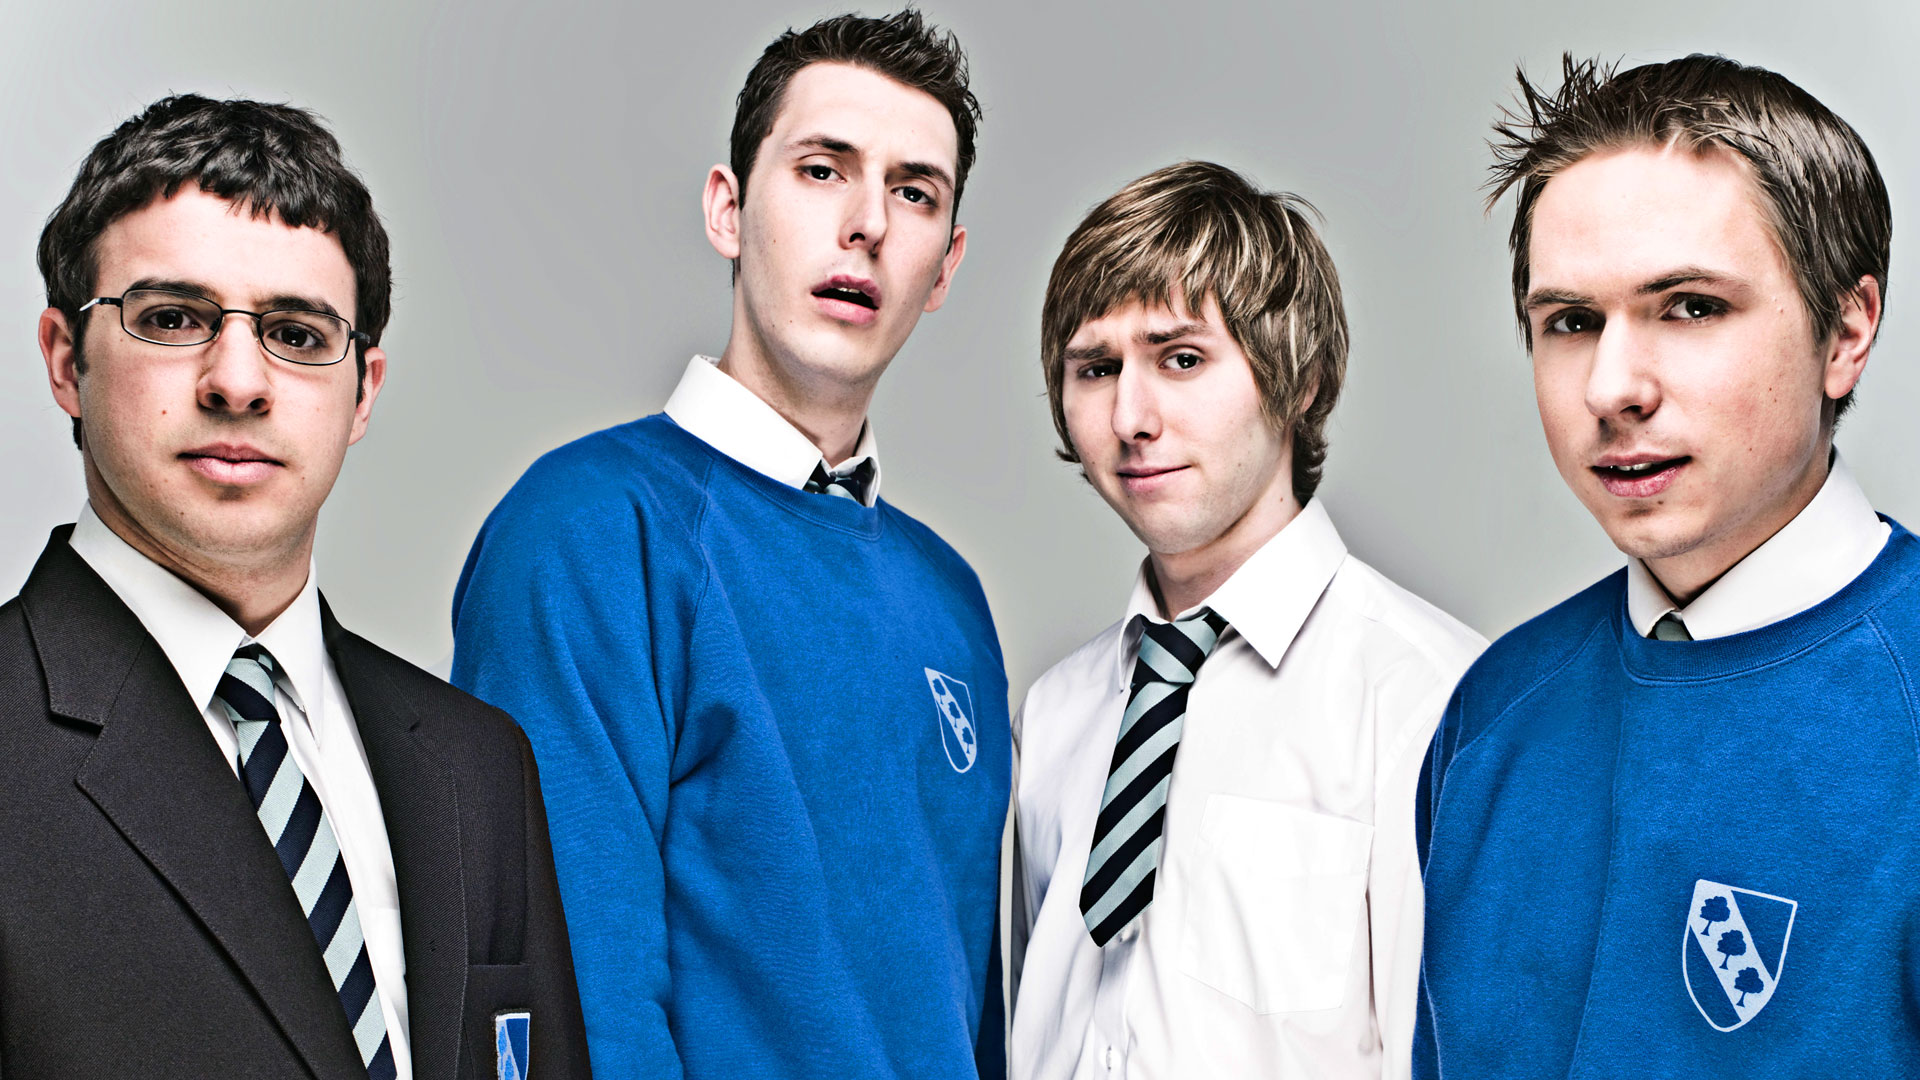 The Inbetweeners, Chanel4